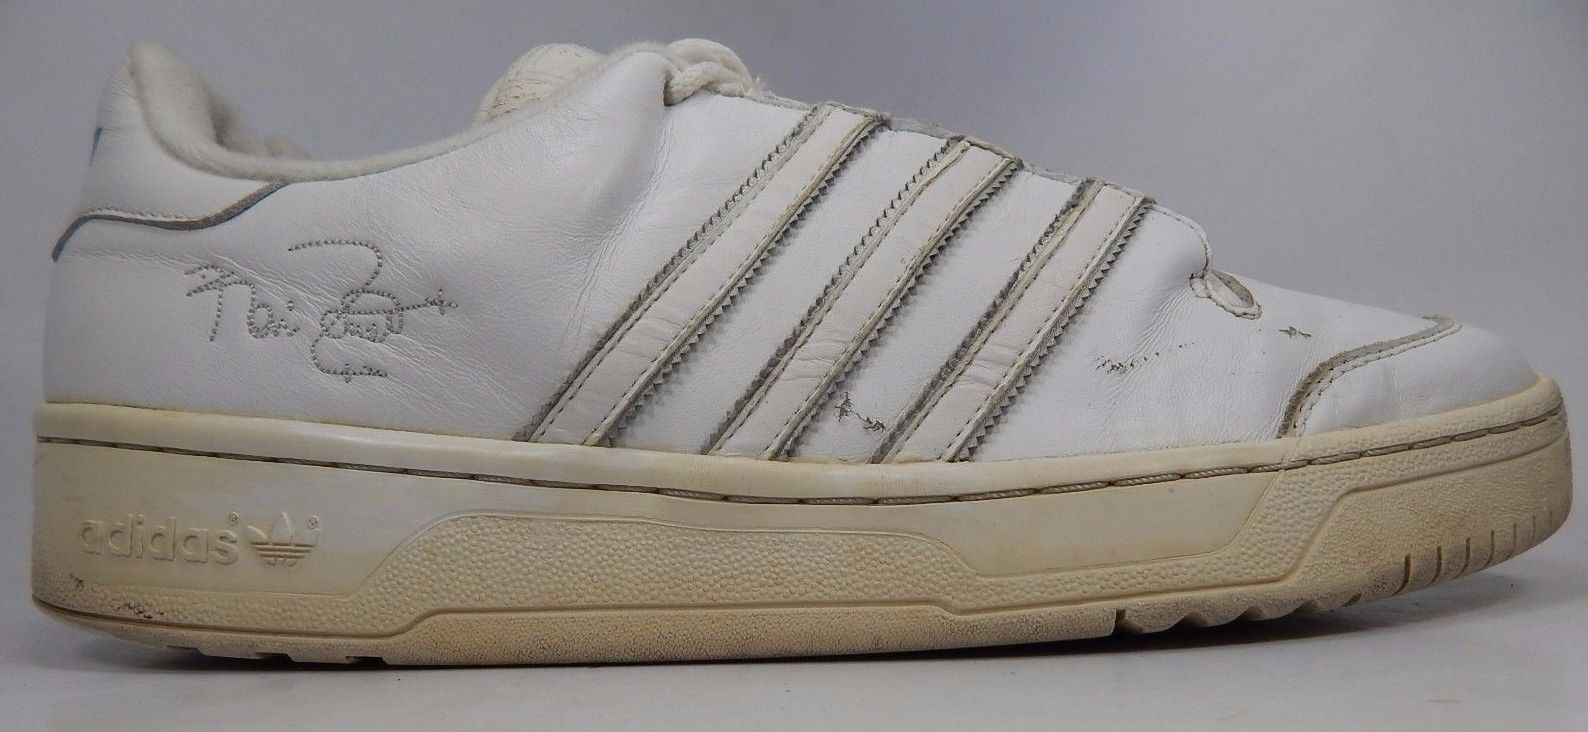 Adidas Vintage KG Men's Leather Athletic Shoes Size US 13 M (D) EU 48 White